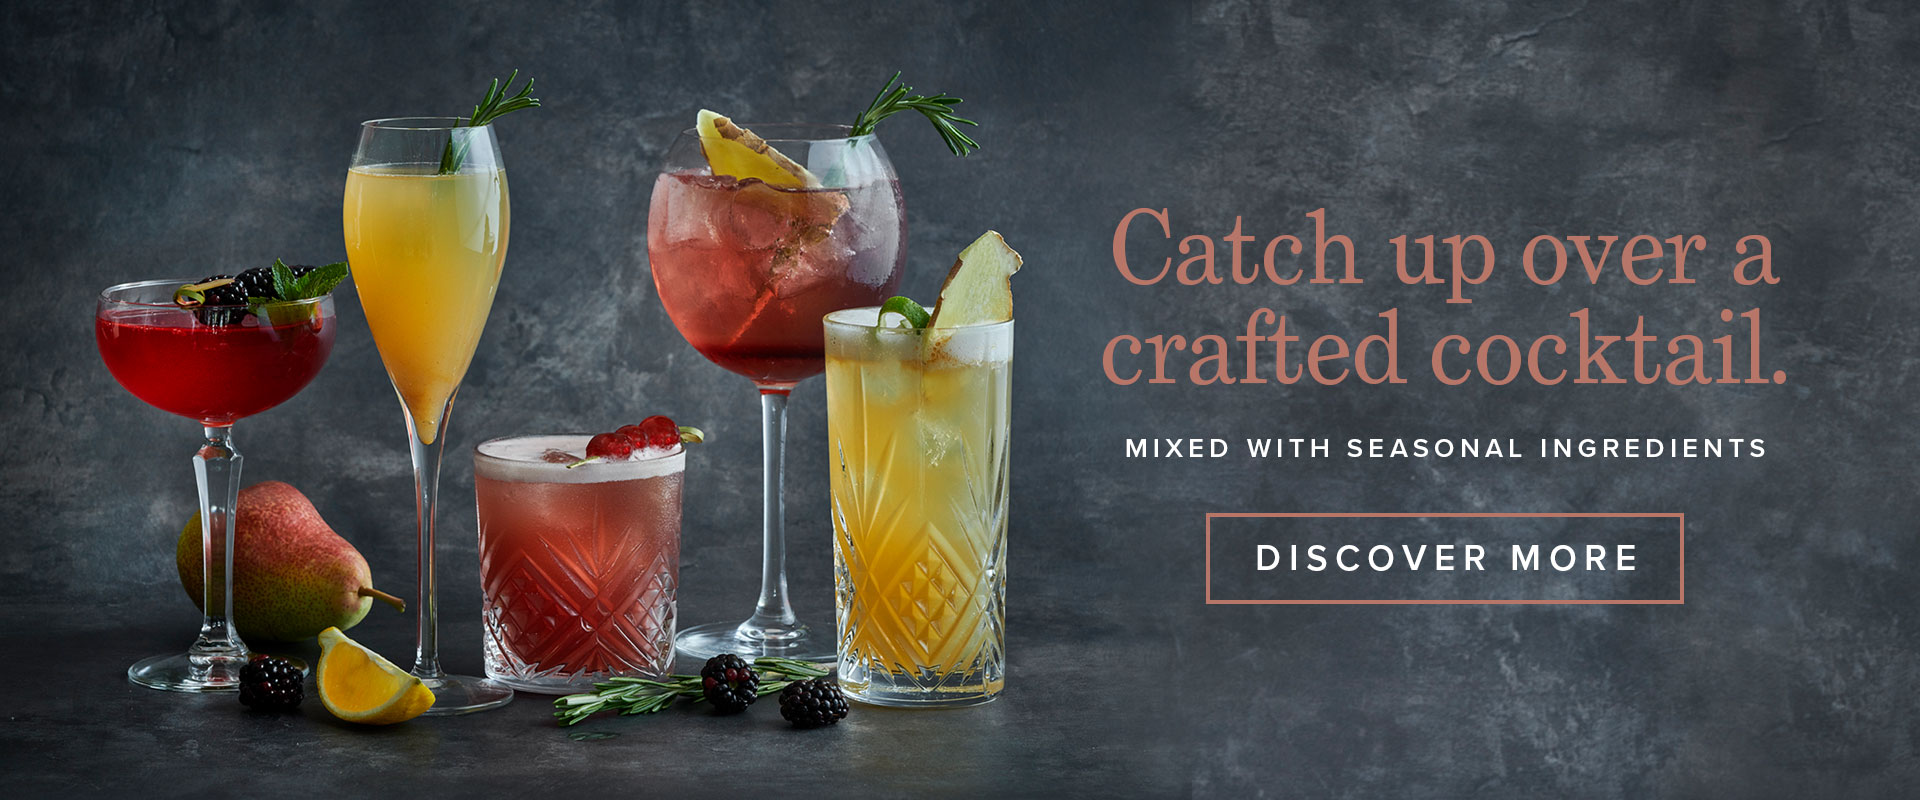 Browns Cocktails